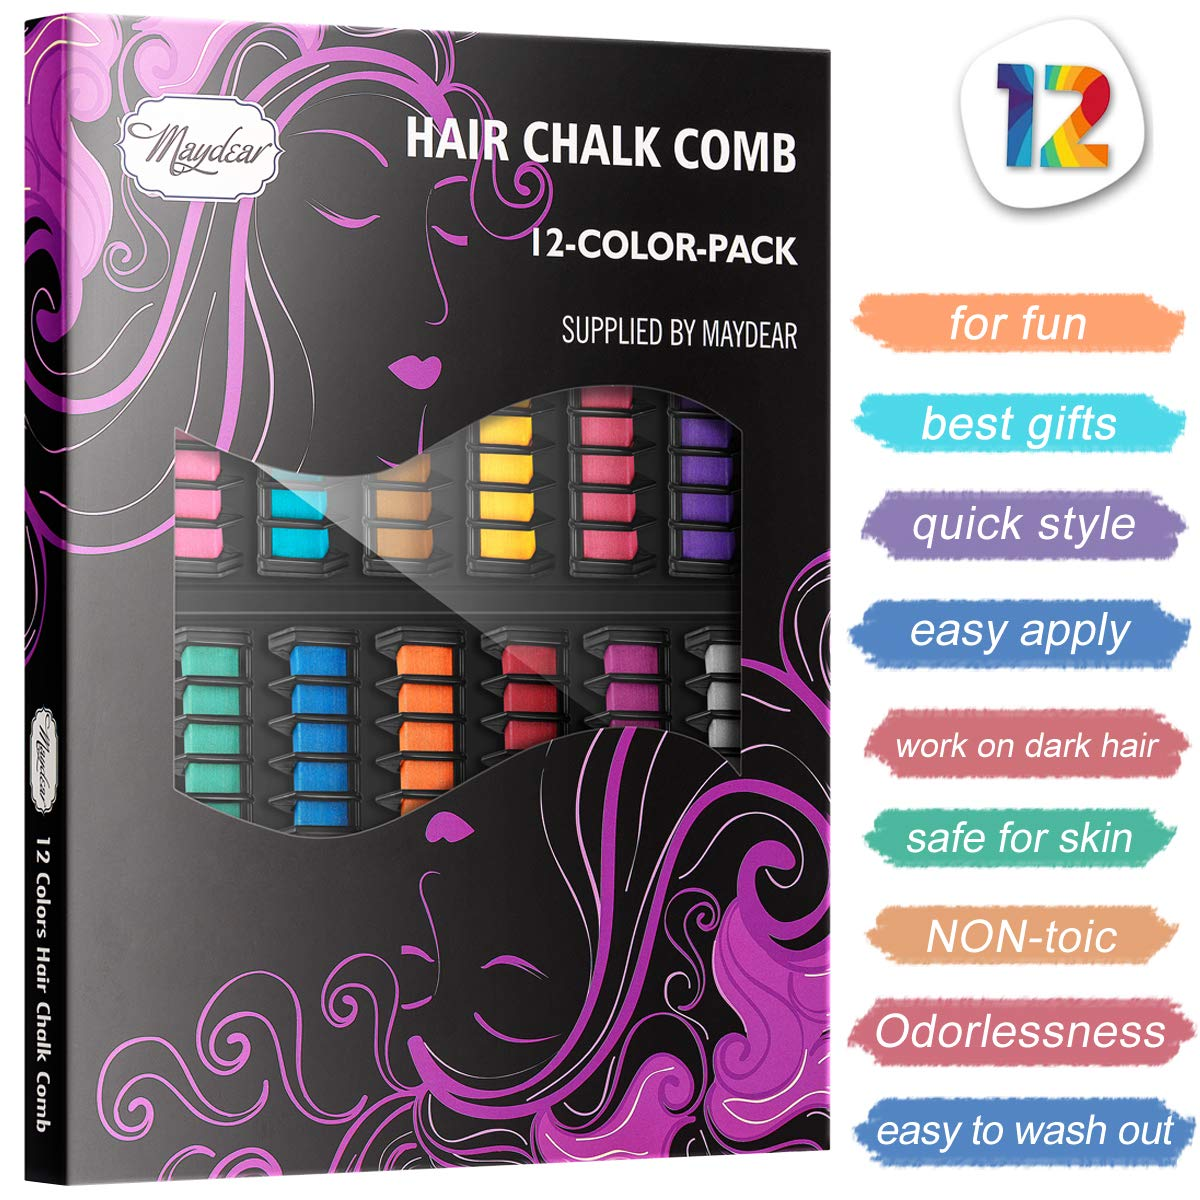 Maydear Temporary Hair Color Hair Dye Hair Chalk Comb with Bright Colors - Popular and Economy Pack (Max Colors) by Maydear